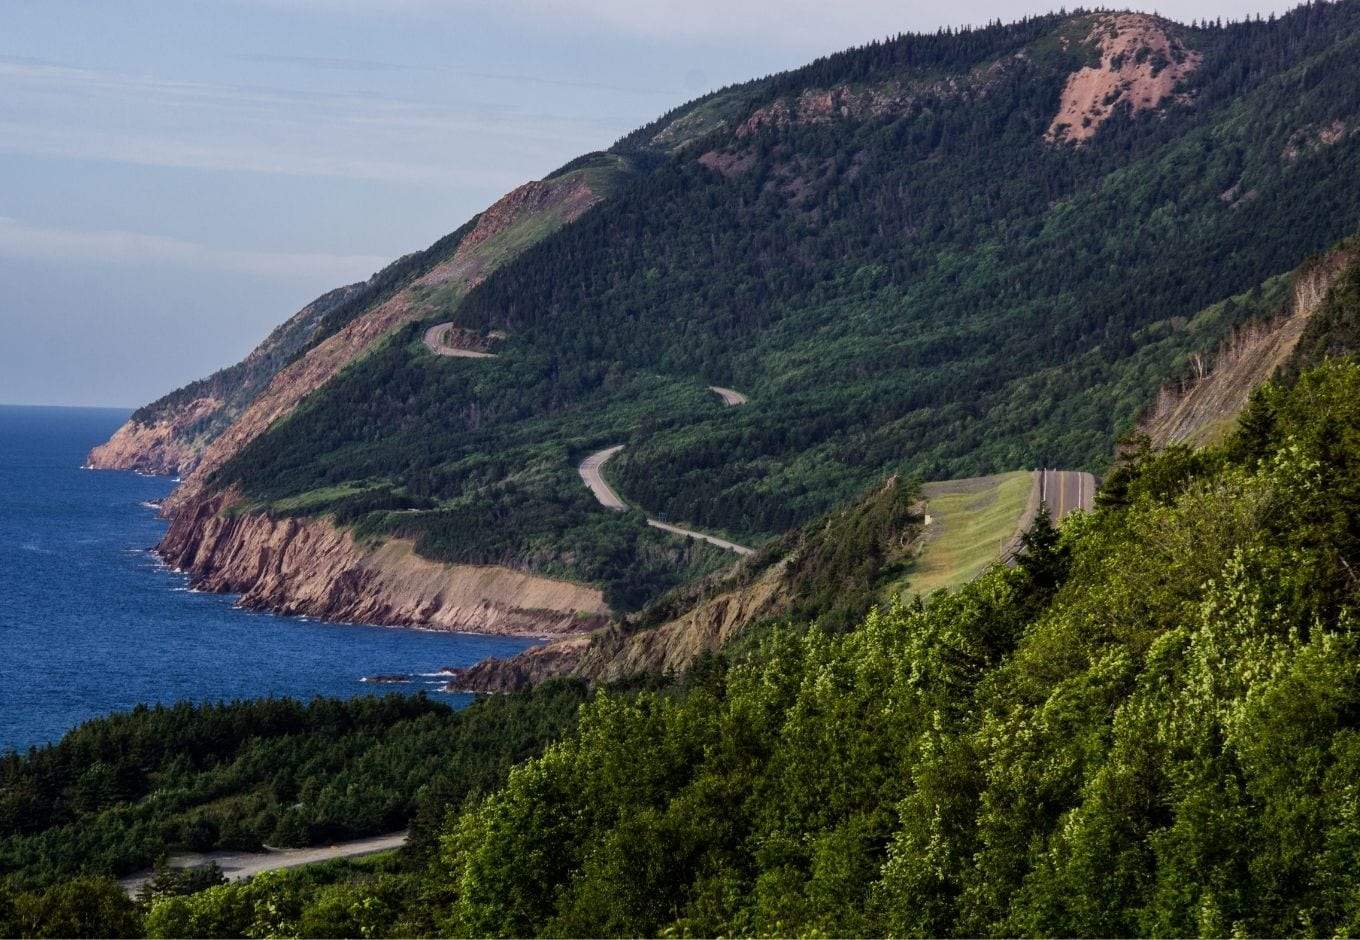 The Cabot Trail Road surrounded by green forests, at Nova Scotia.